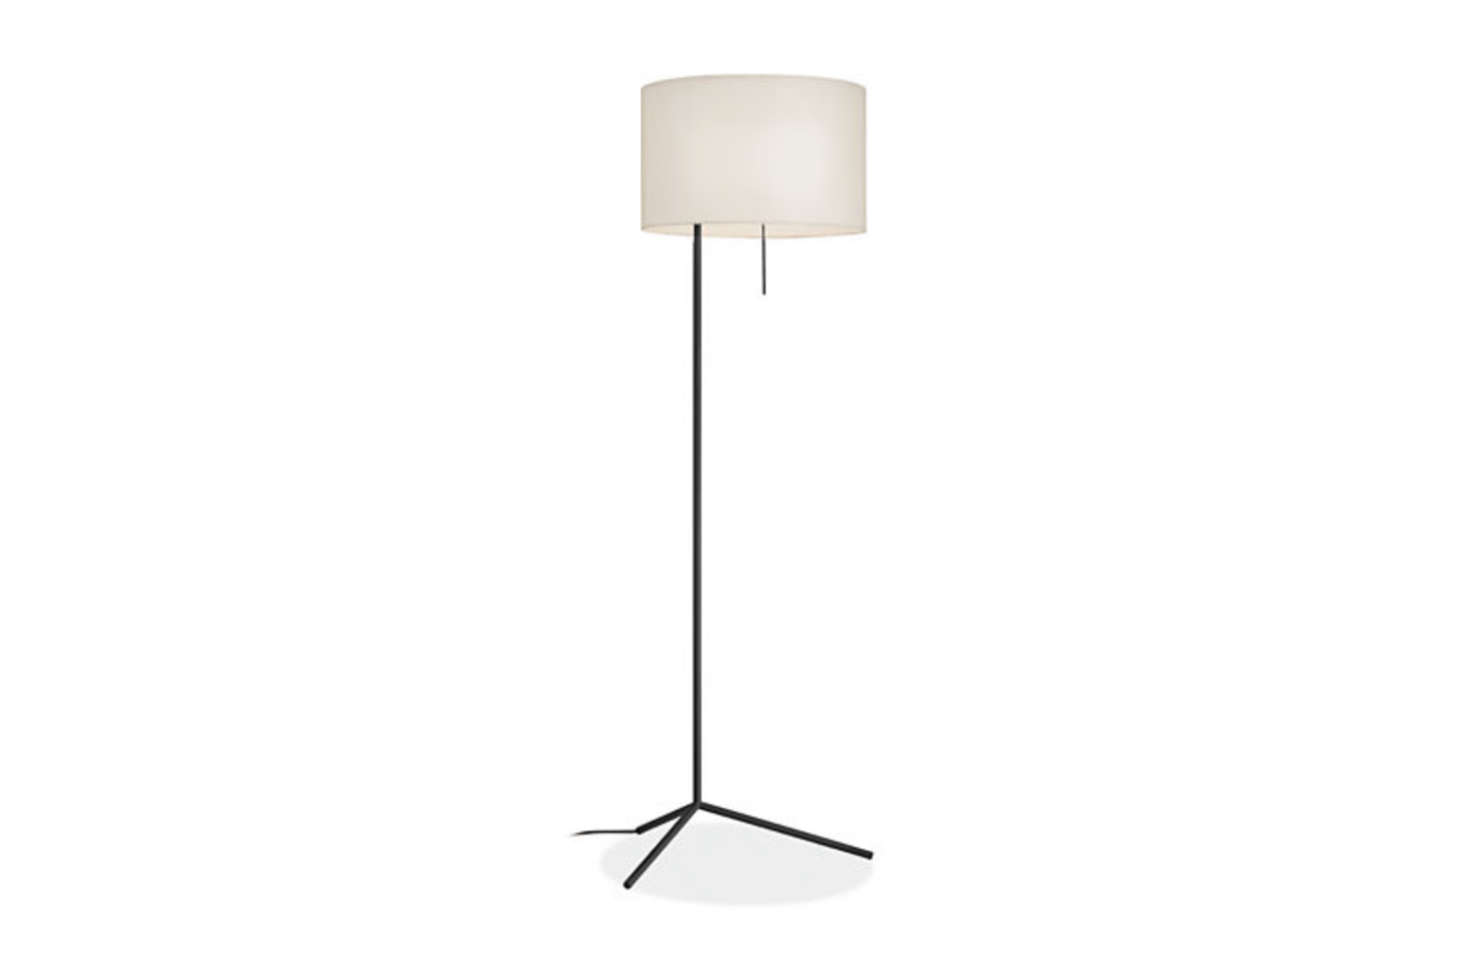 TheRoom & Board Crane Floor Lamphas a hand-welded base, a fabric cord, and a white fabric shade; $529.